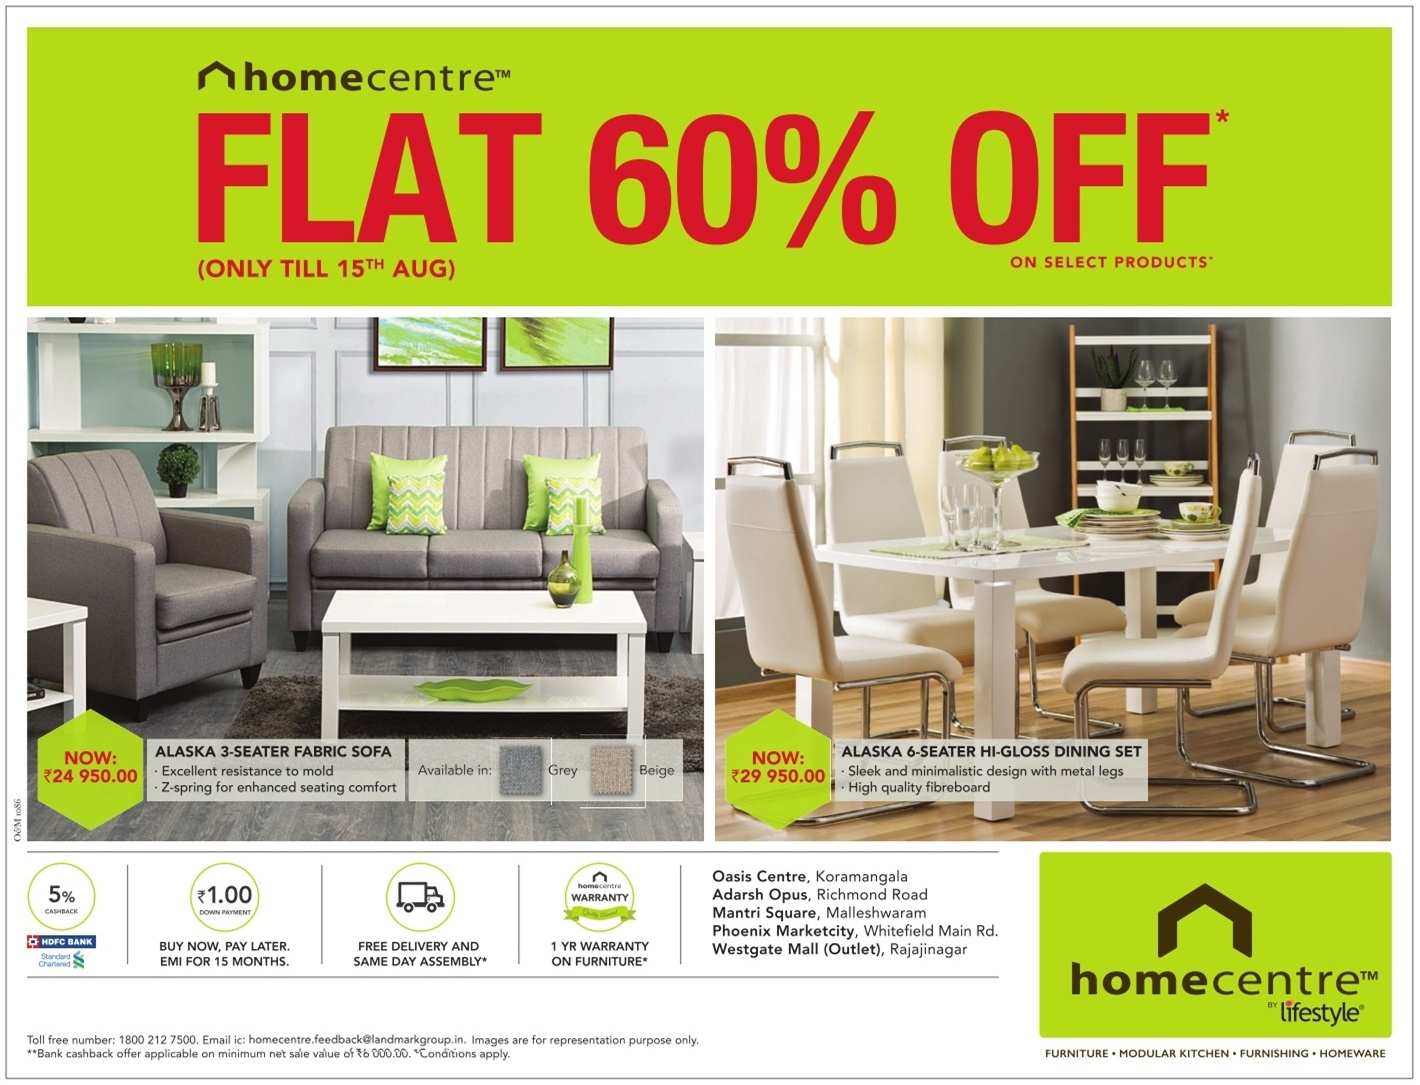 Home Centre Life Style Furniture 3 Seater Fabric Sofa And 6 Seater Gloss Dining Set Ad Advert